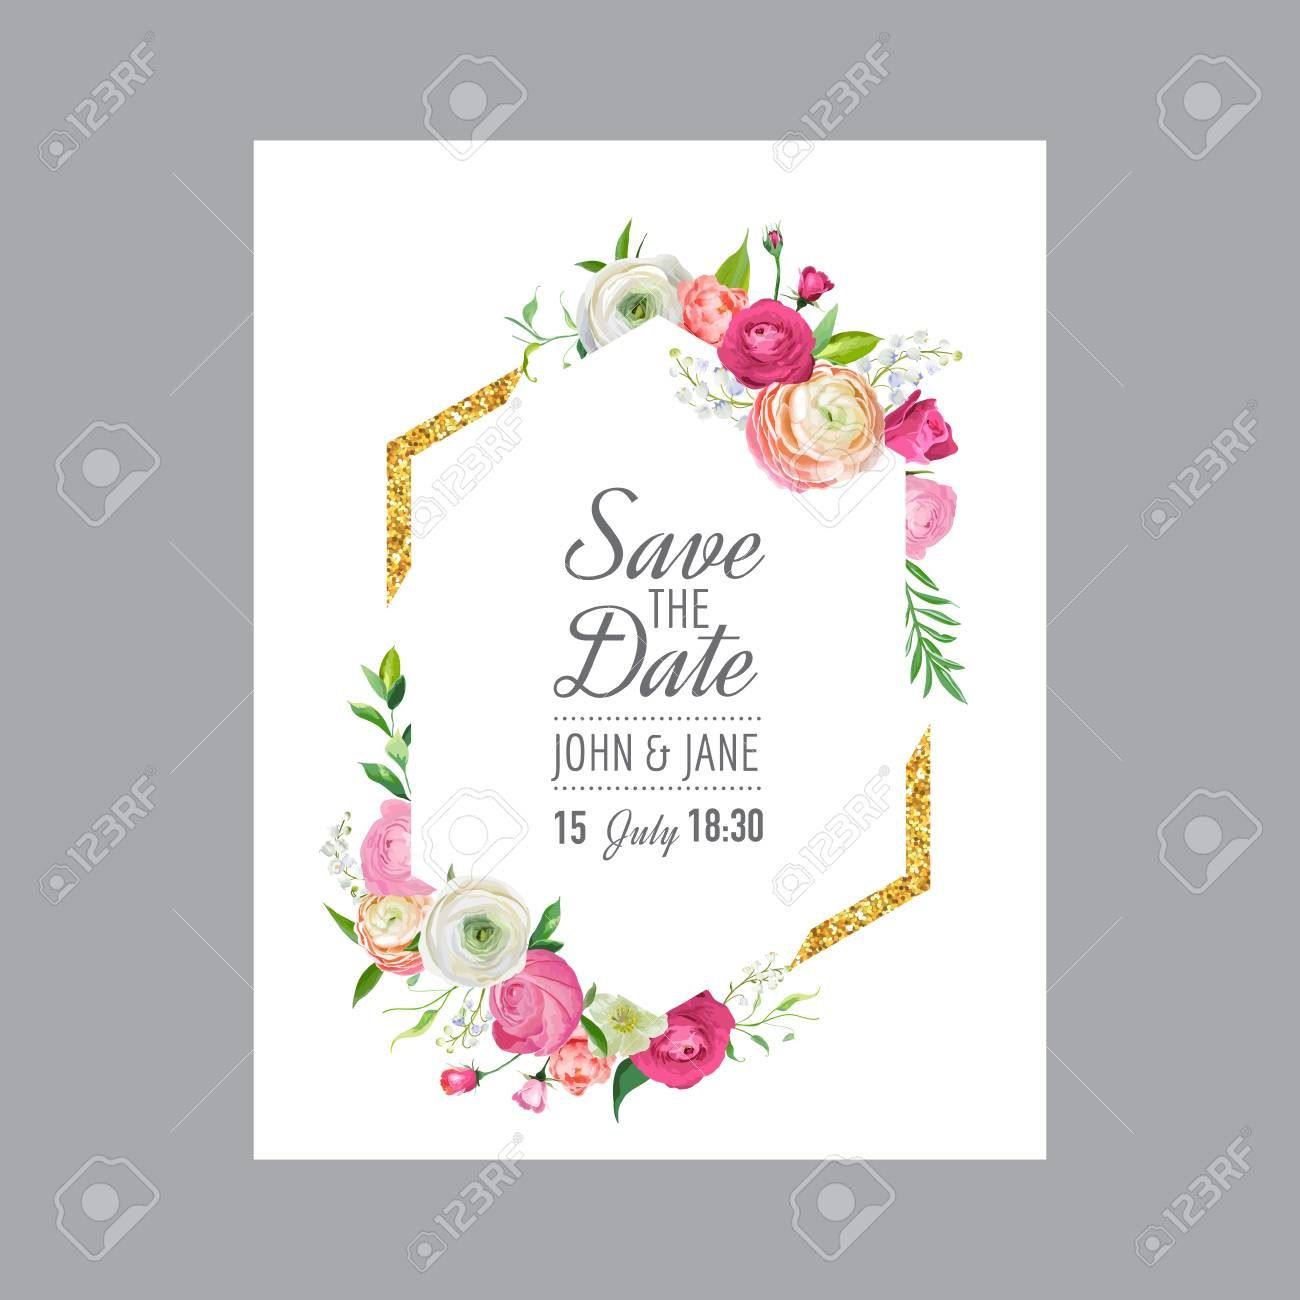 005 Imposing Save The Date Birthday Card Template High Definition  Free PrintableFull